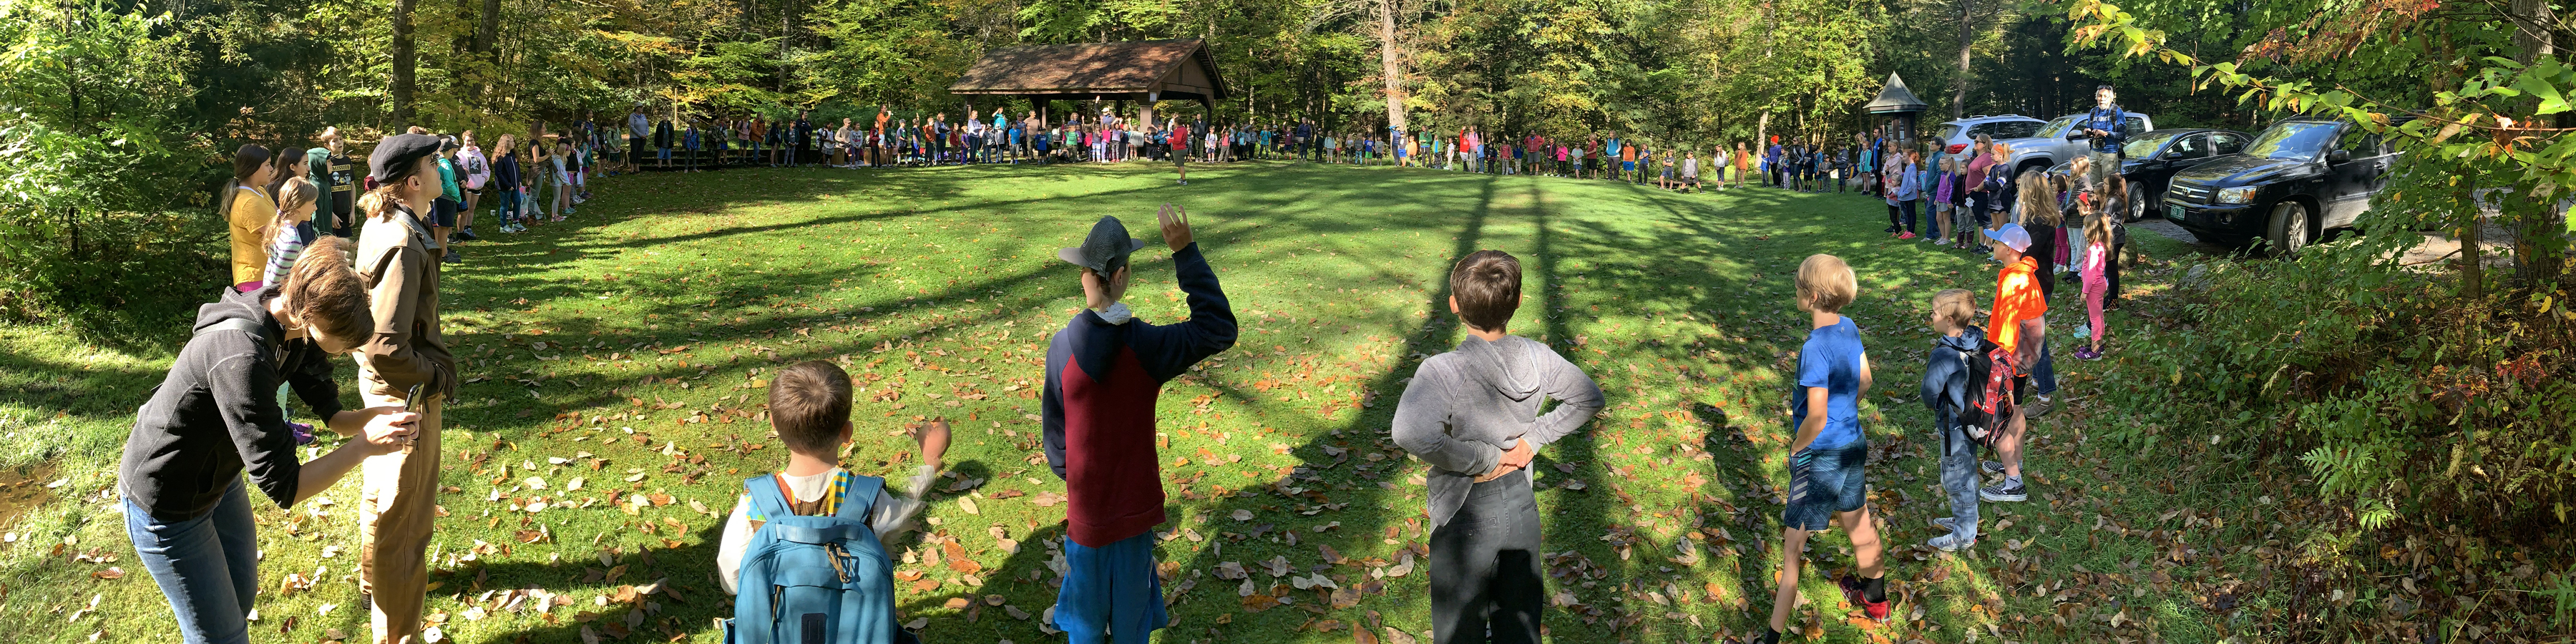 The whole school connects in a circle of dancing and drumming at Hubbard Park.